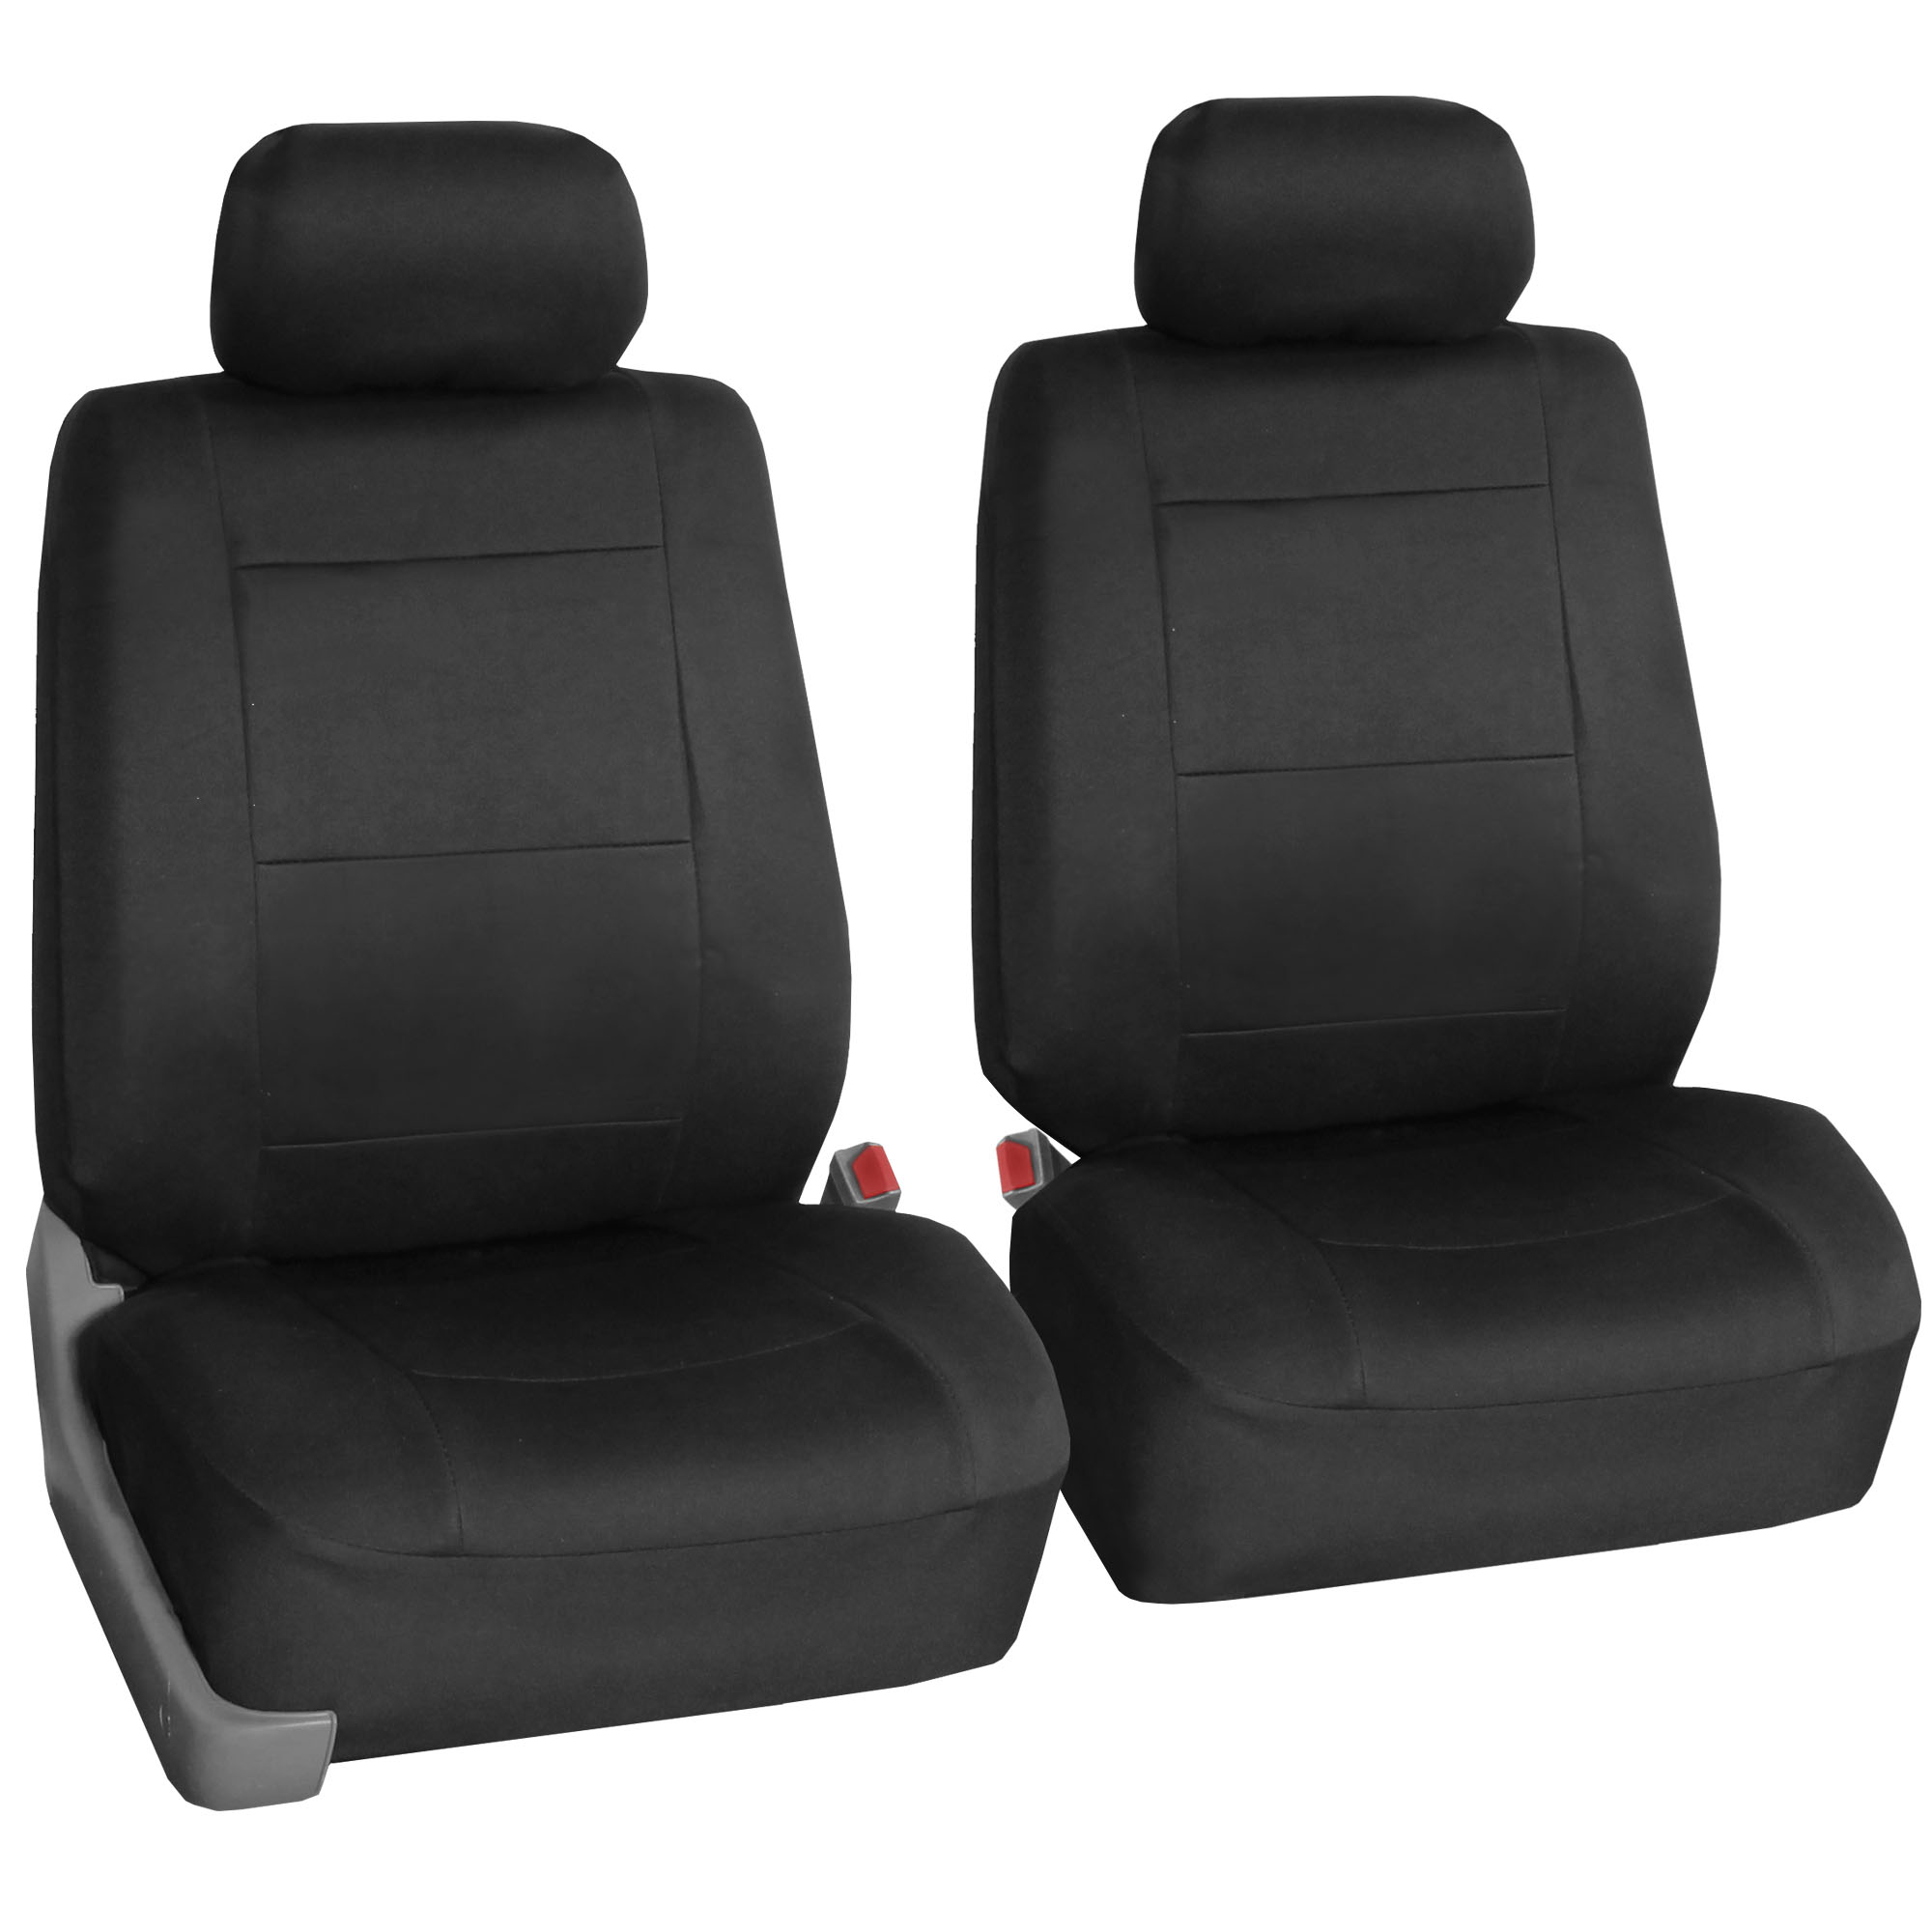 FH Group Neoprene Seat Covers for Sedan, SUV, Truck, Van, Two Front Buckets, Black